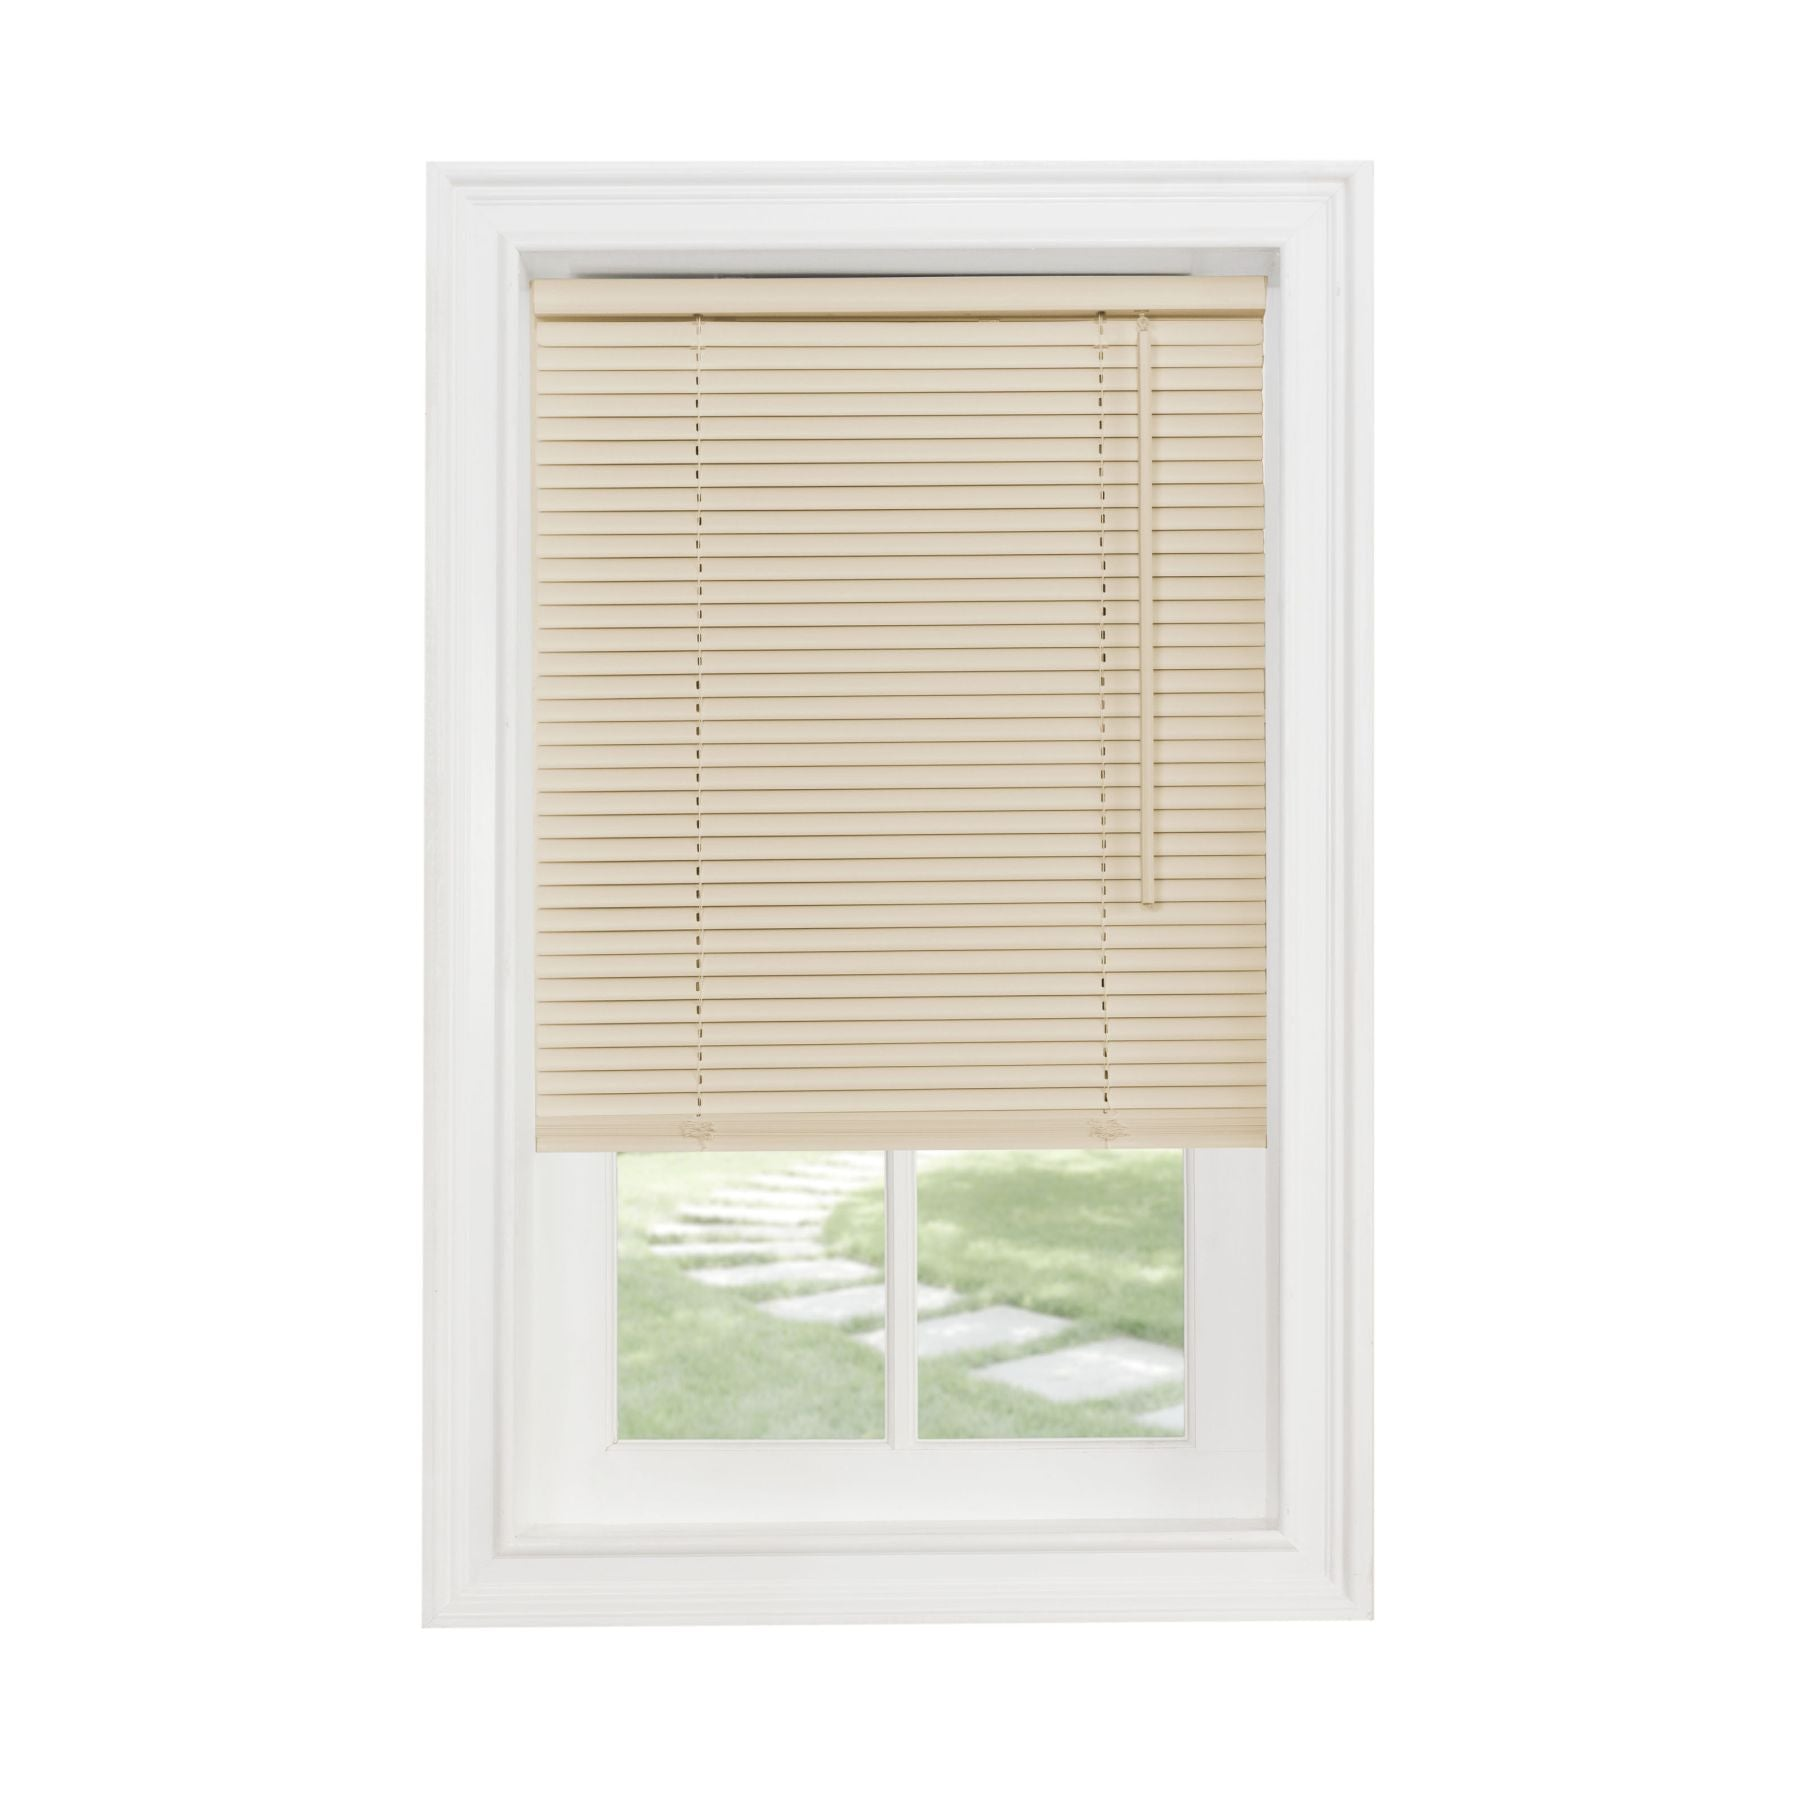 "Traditional Elegance Cordless Sunrise 1"" Light Filtering Mini Blind 29x64 - Alabaster"